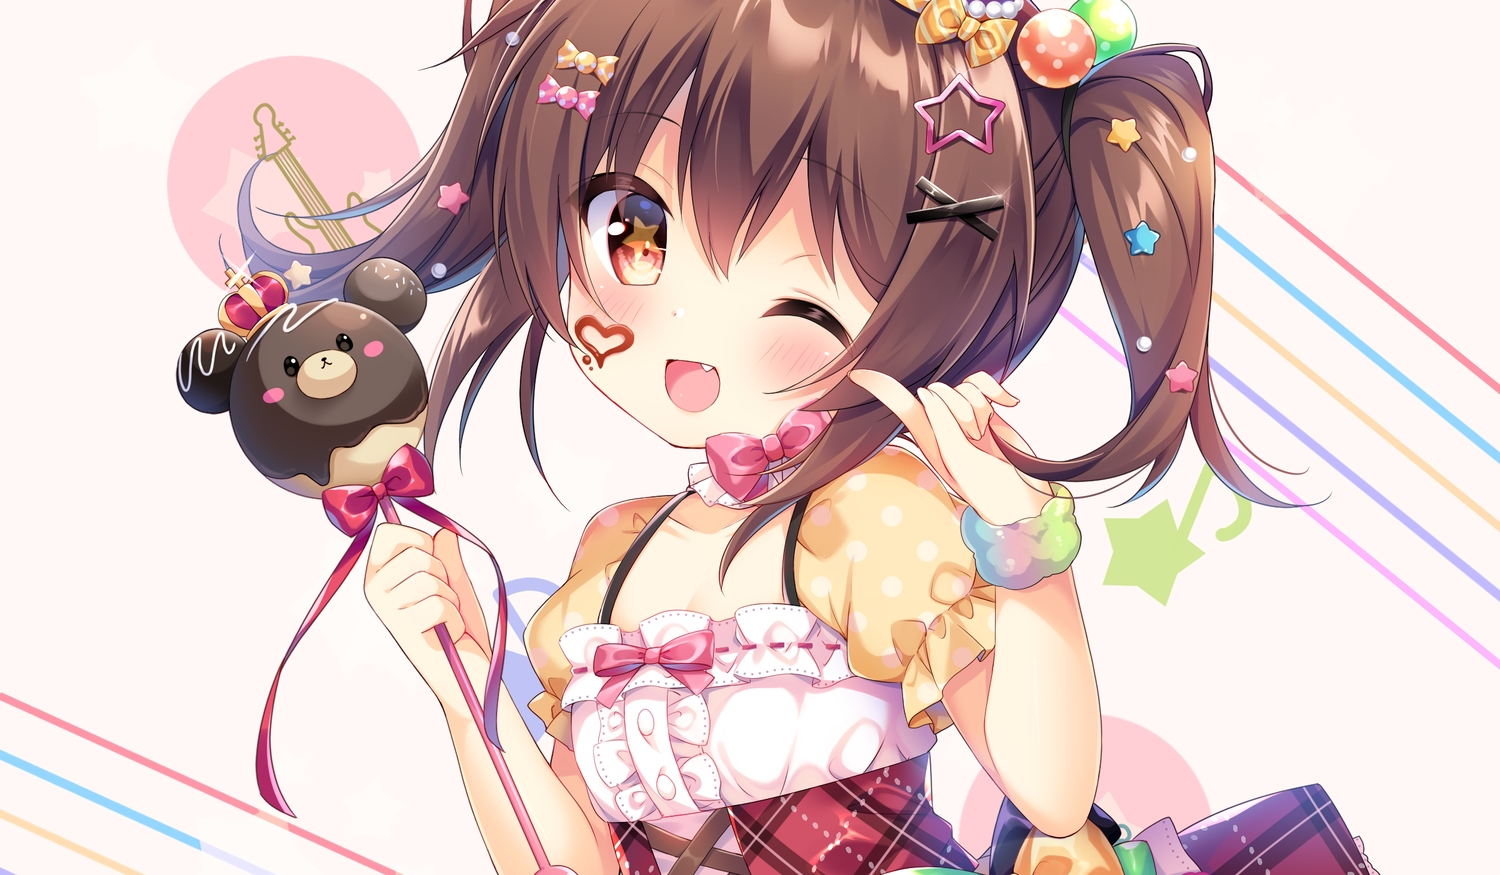 blush bow brown_hair candy chocolate dress fang loli red_eyes ribbons twintails umeko_machi wand wink wristwear